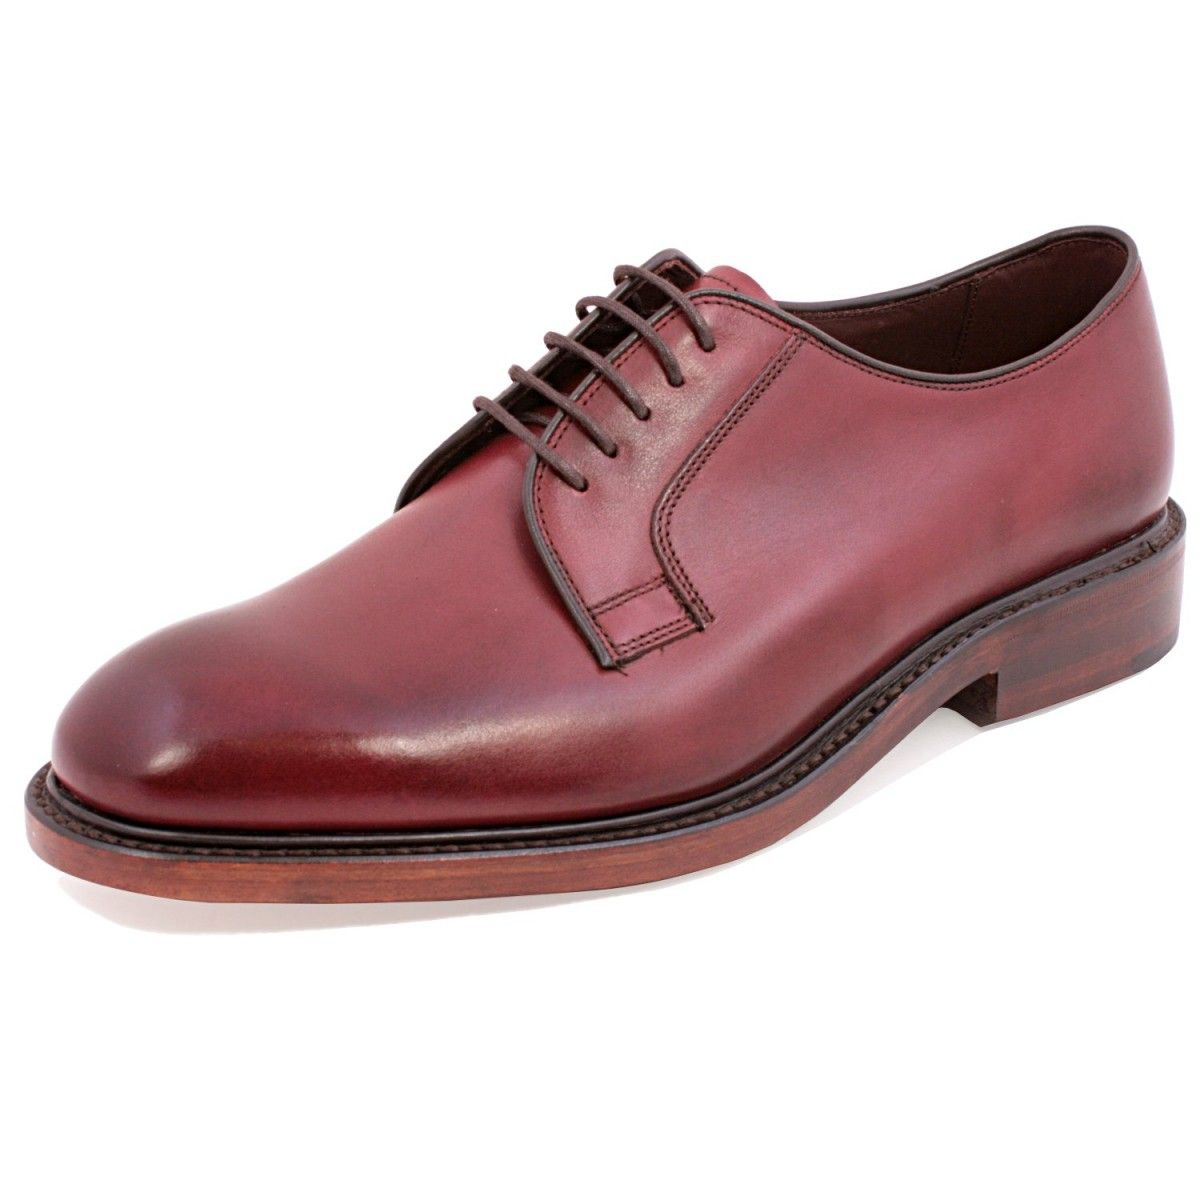 Perth Shoes The Loake Perth In Burgundy Derby Shoe Genius My